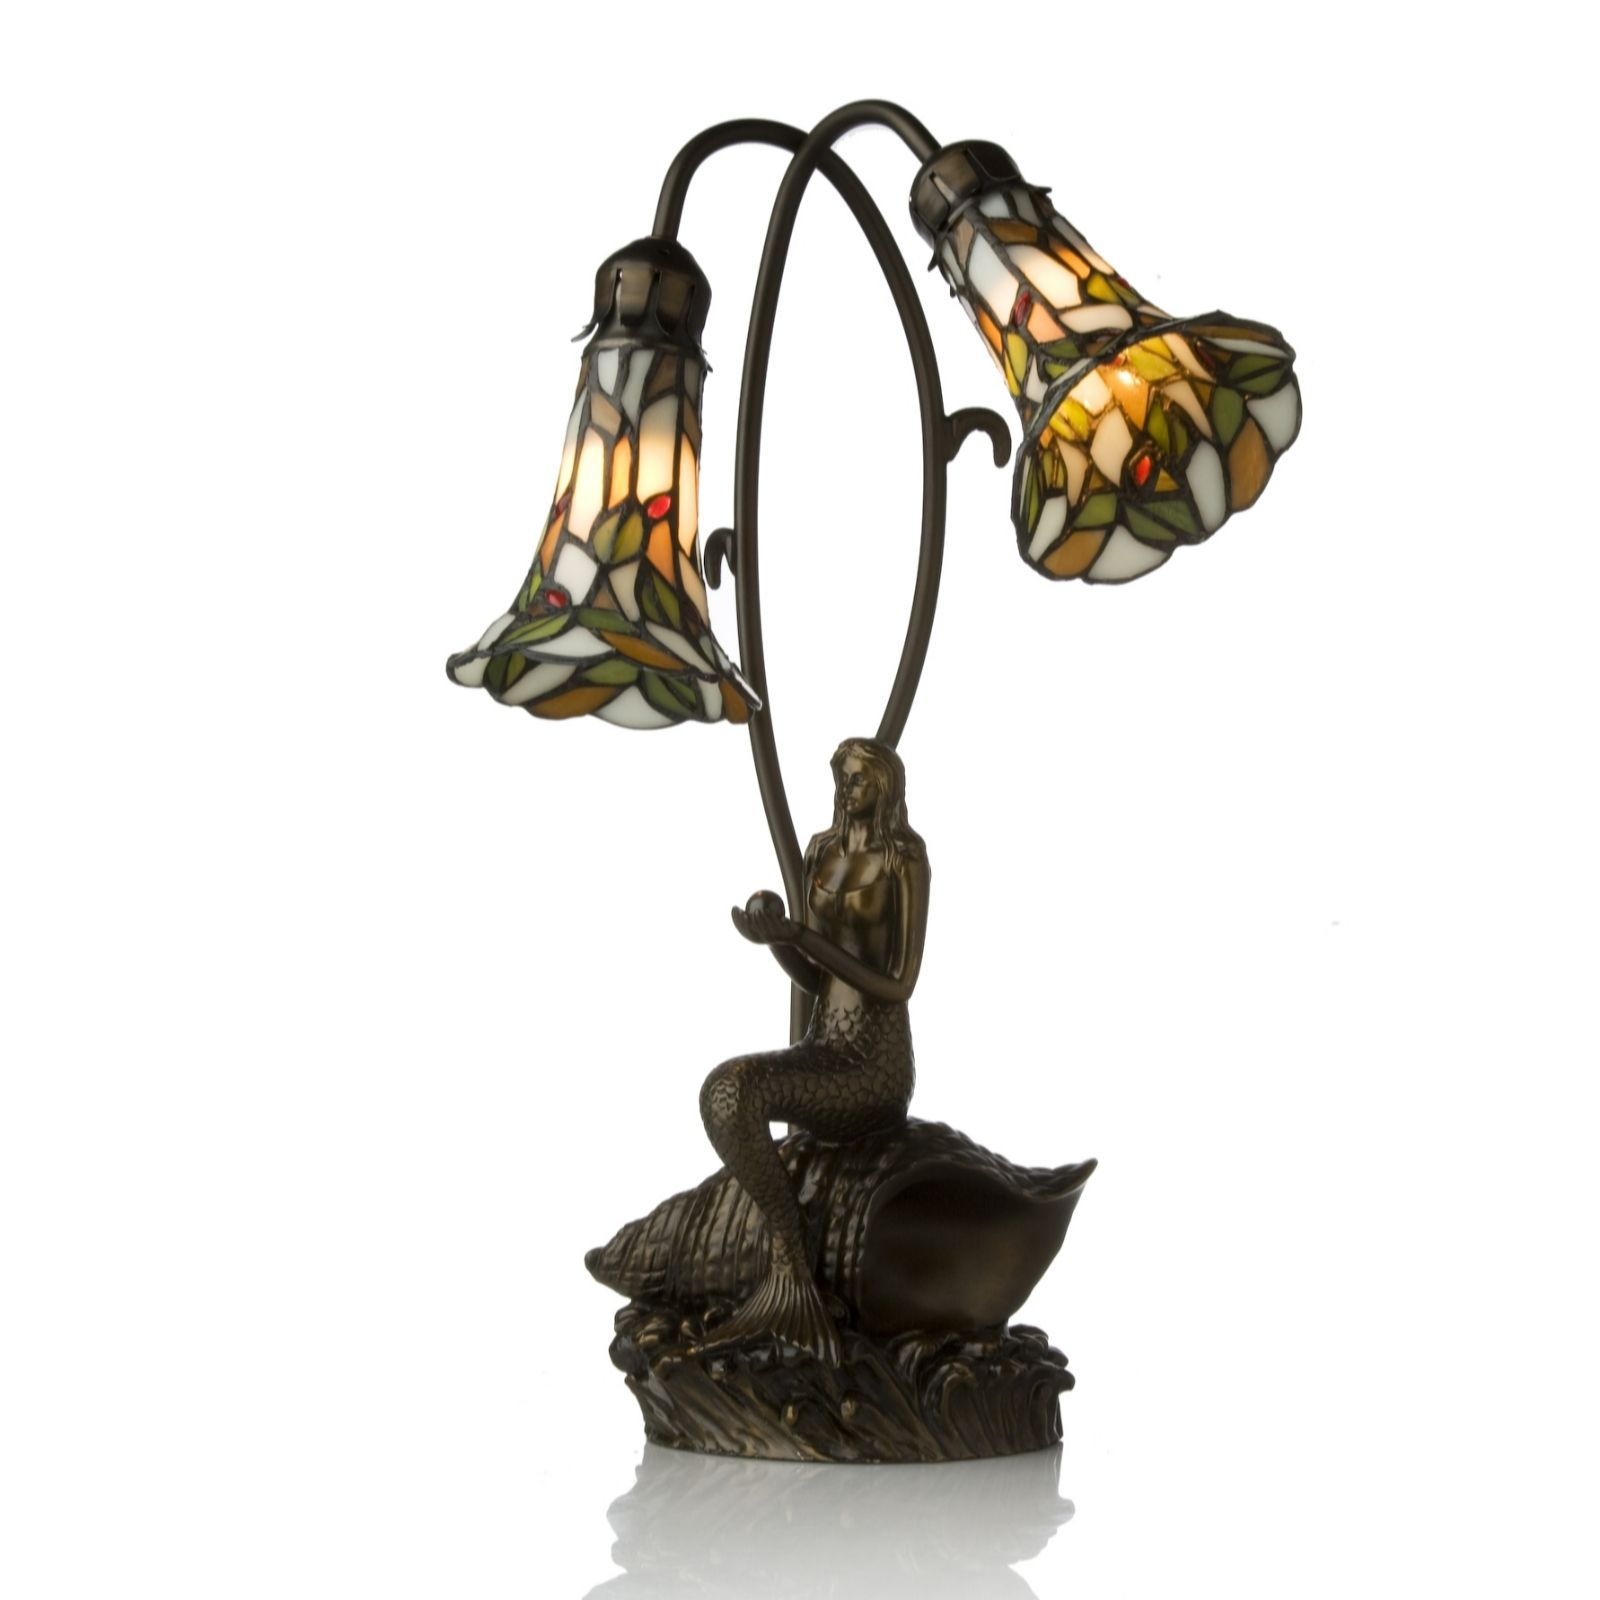 Tiffany Style Handcrafted Mermaid Double Shade Table Lamp   QVC UK